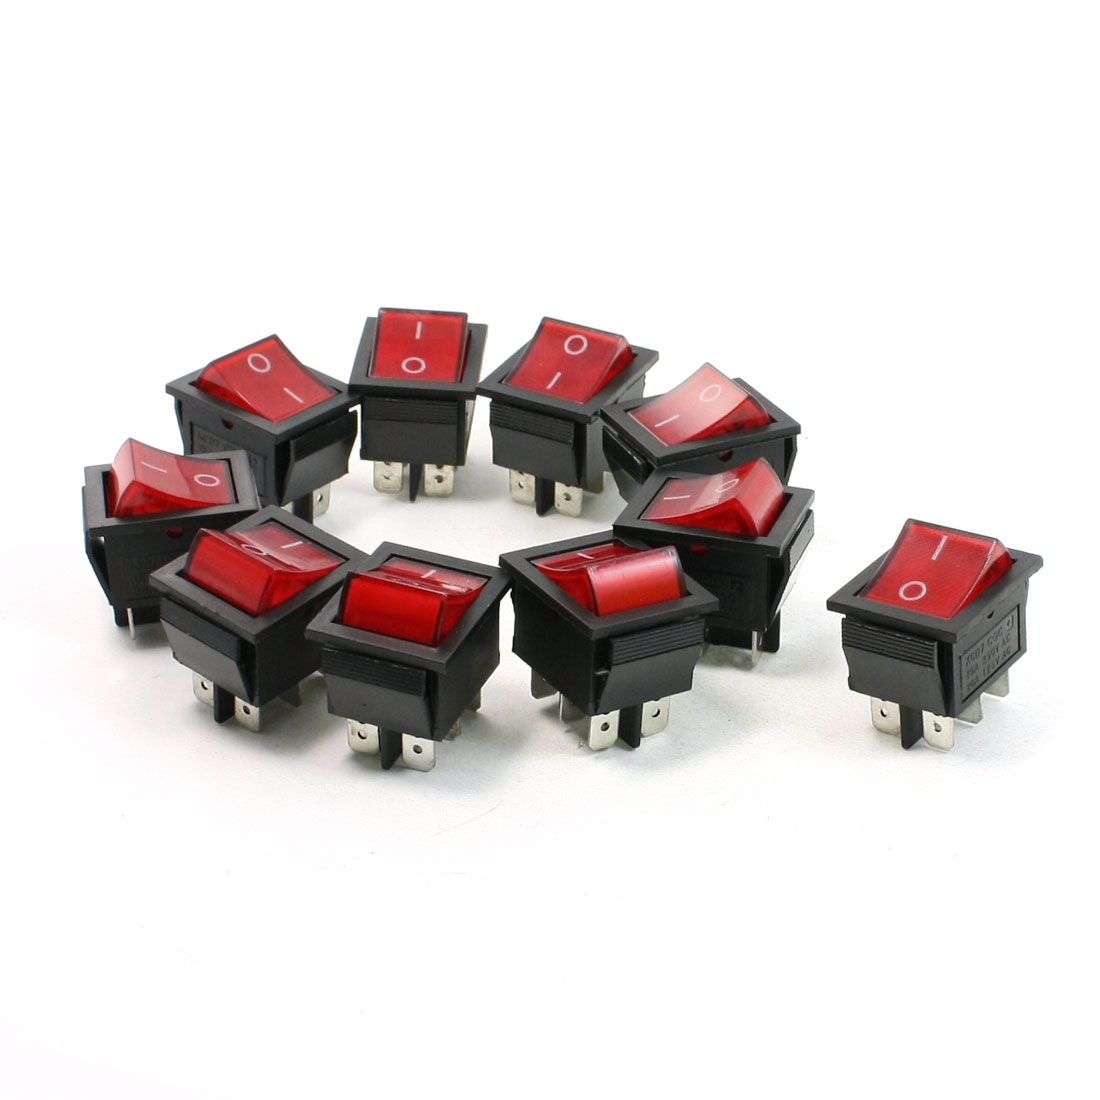 AC 10A 250V/20A 125V Red Neon Lamp 4 Pin DPST ON/OFF Rocker Switch 10 Pcs